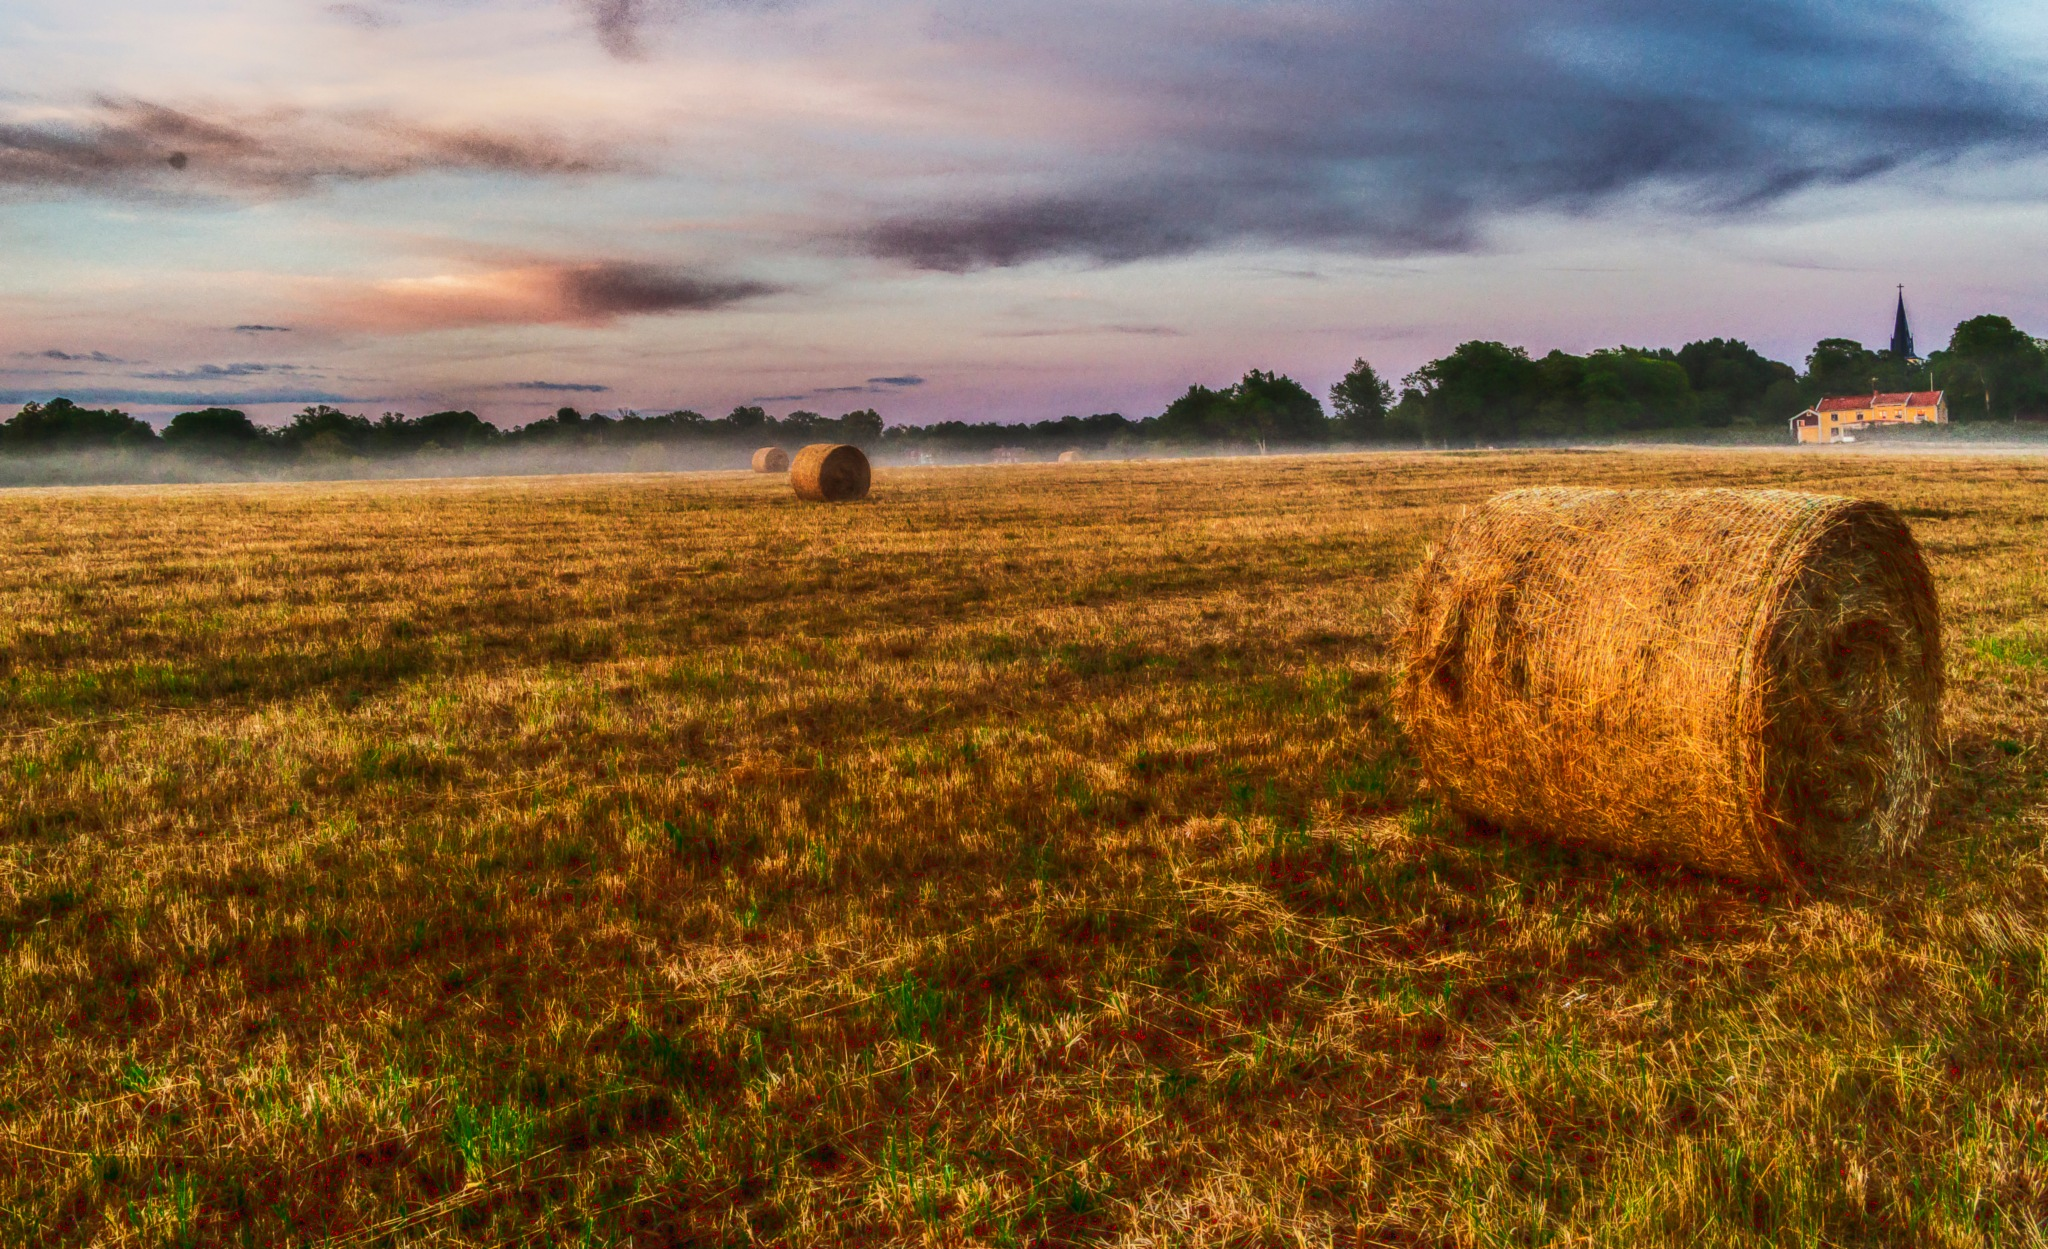 Hay in the Evening a Hot and Dry Summer by carljan w carlsson